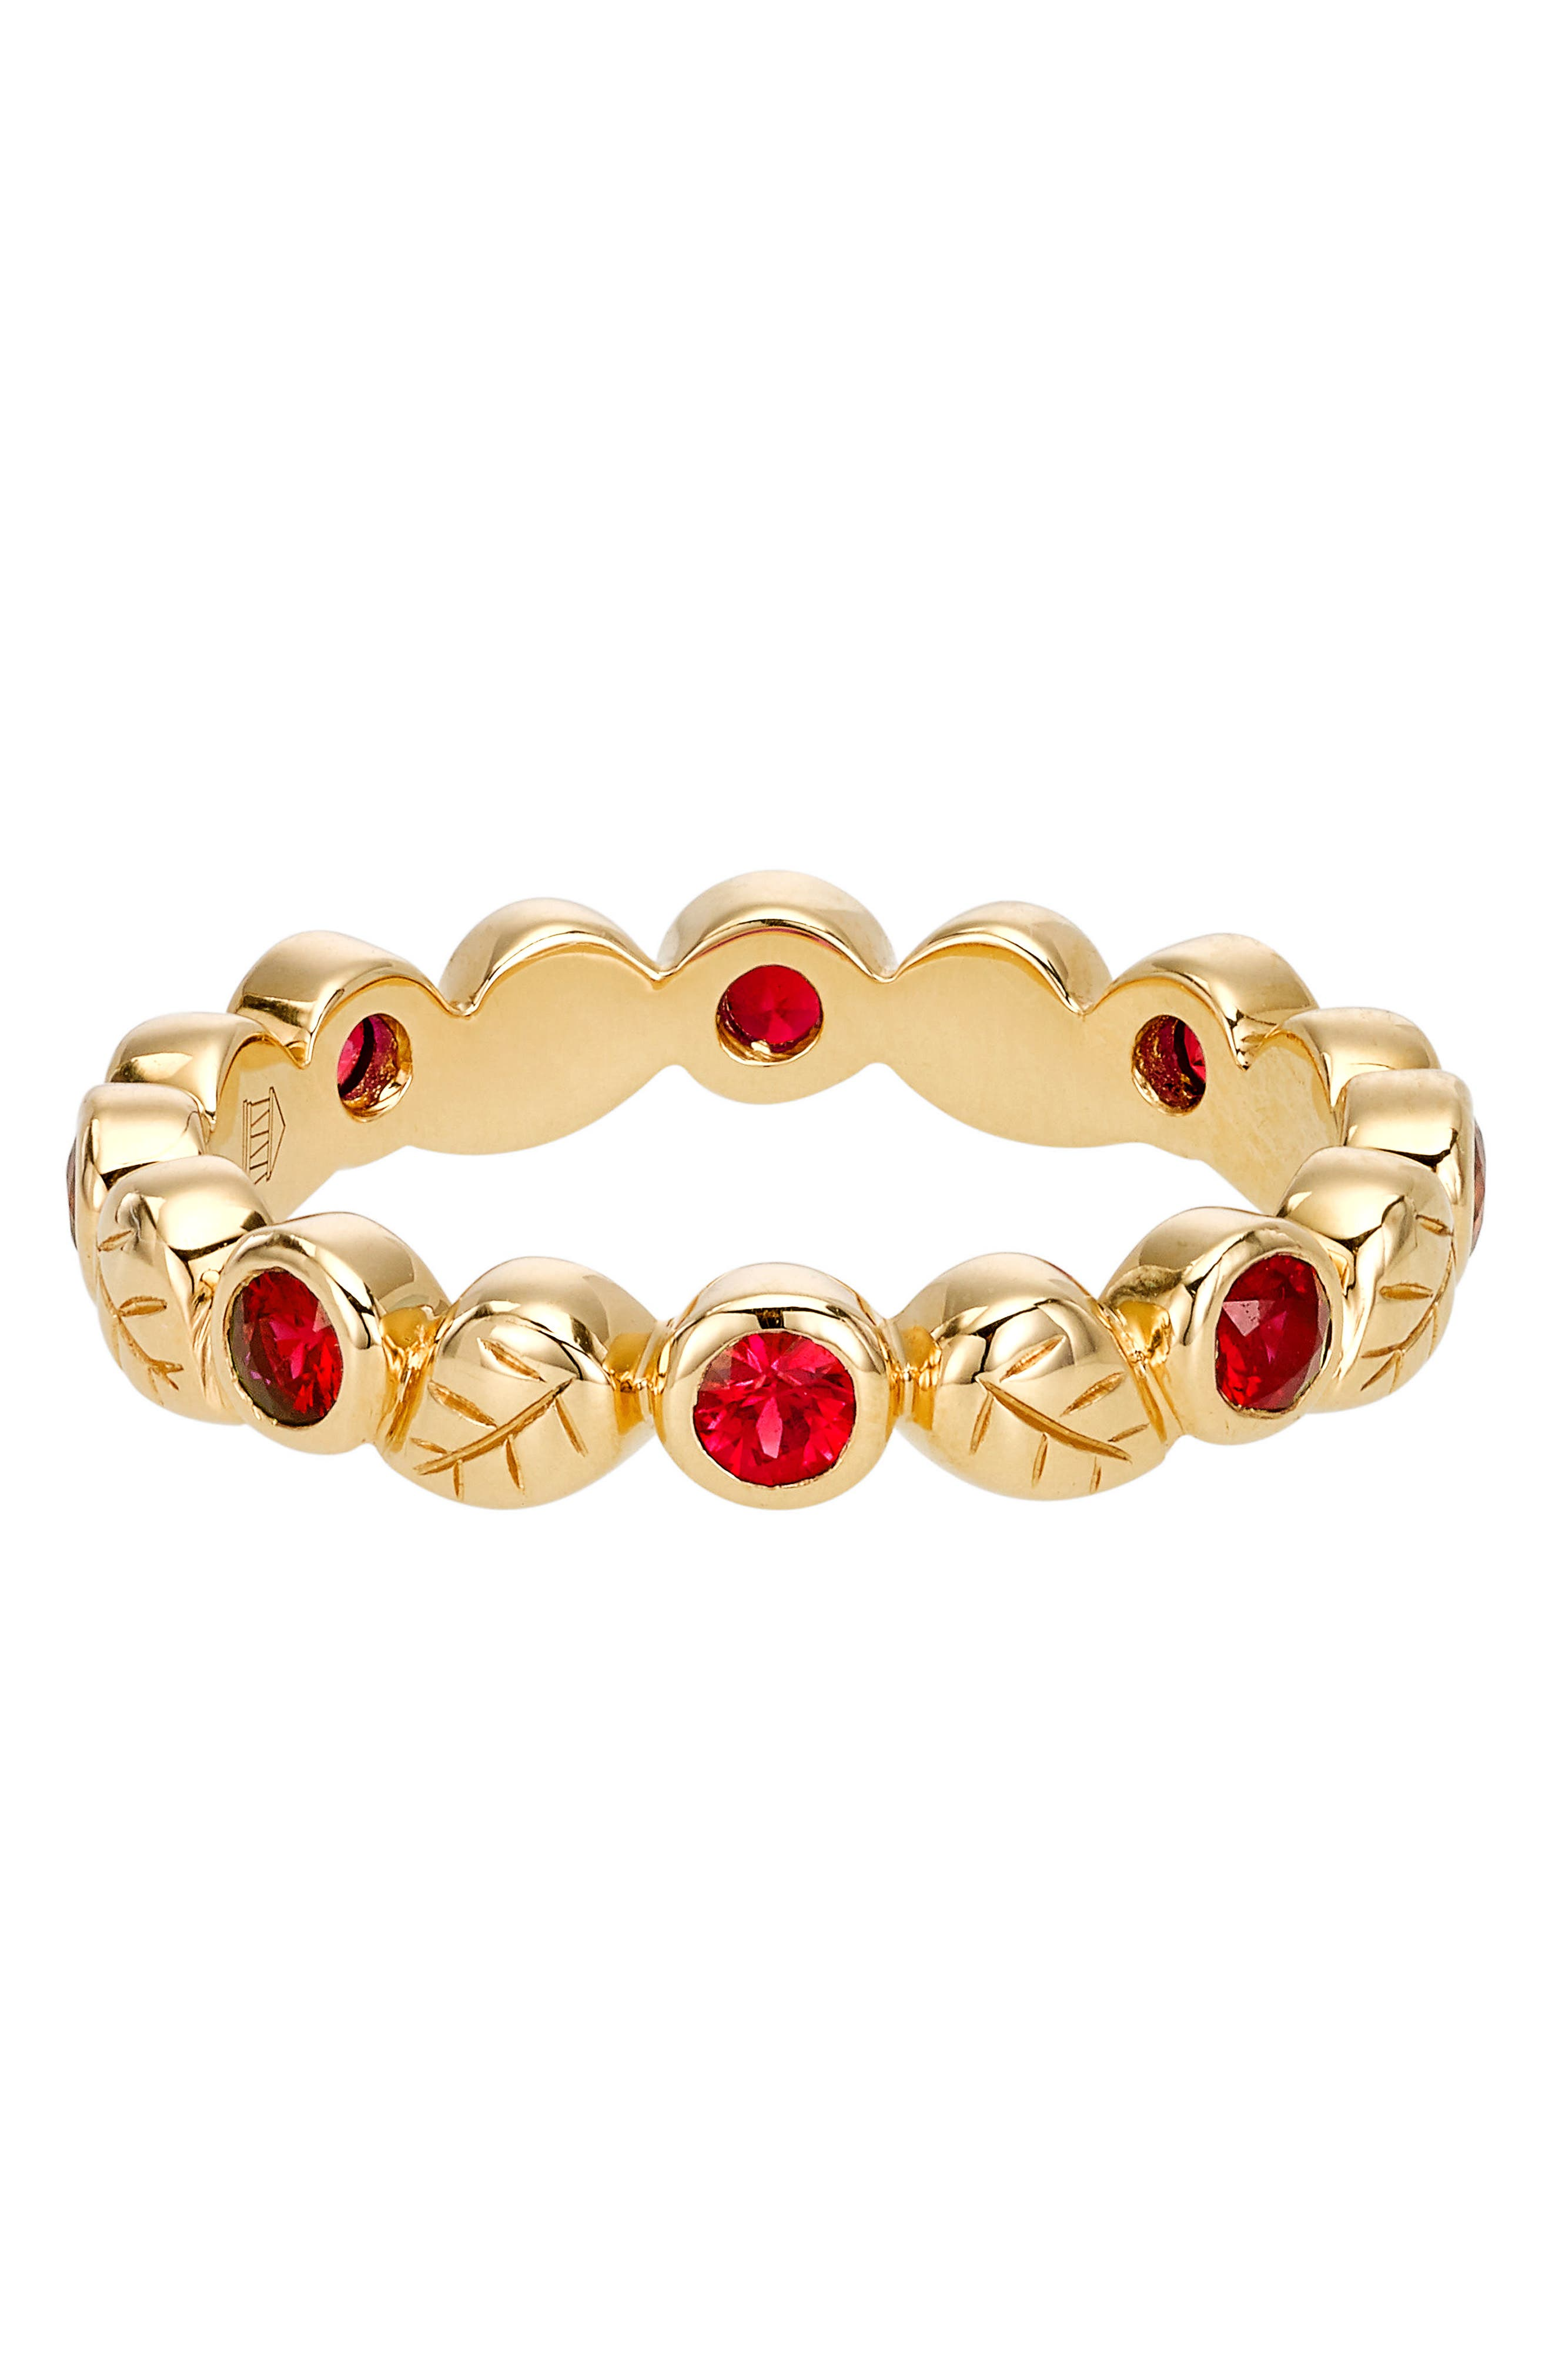 Temple St. Clair Objet Trouvé Arcadia Band Ring,                         Main,                         color, Yellow Gold/ Ruby